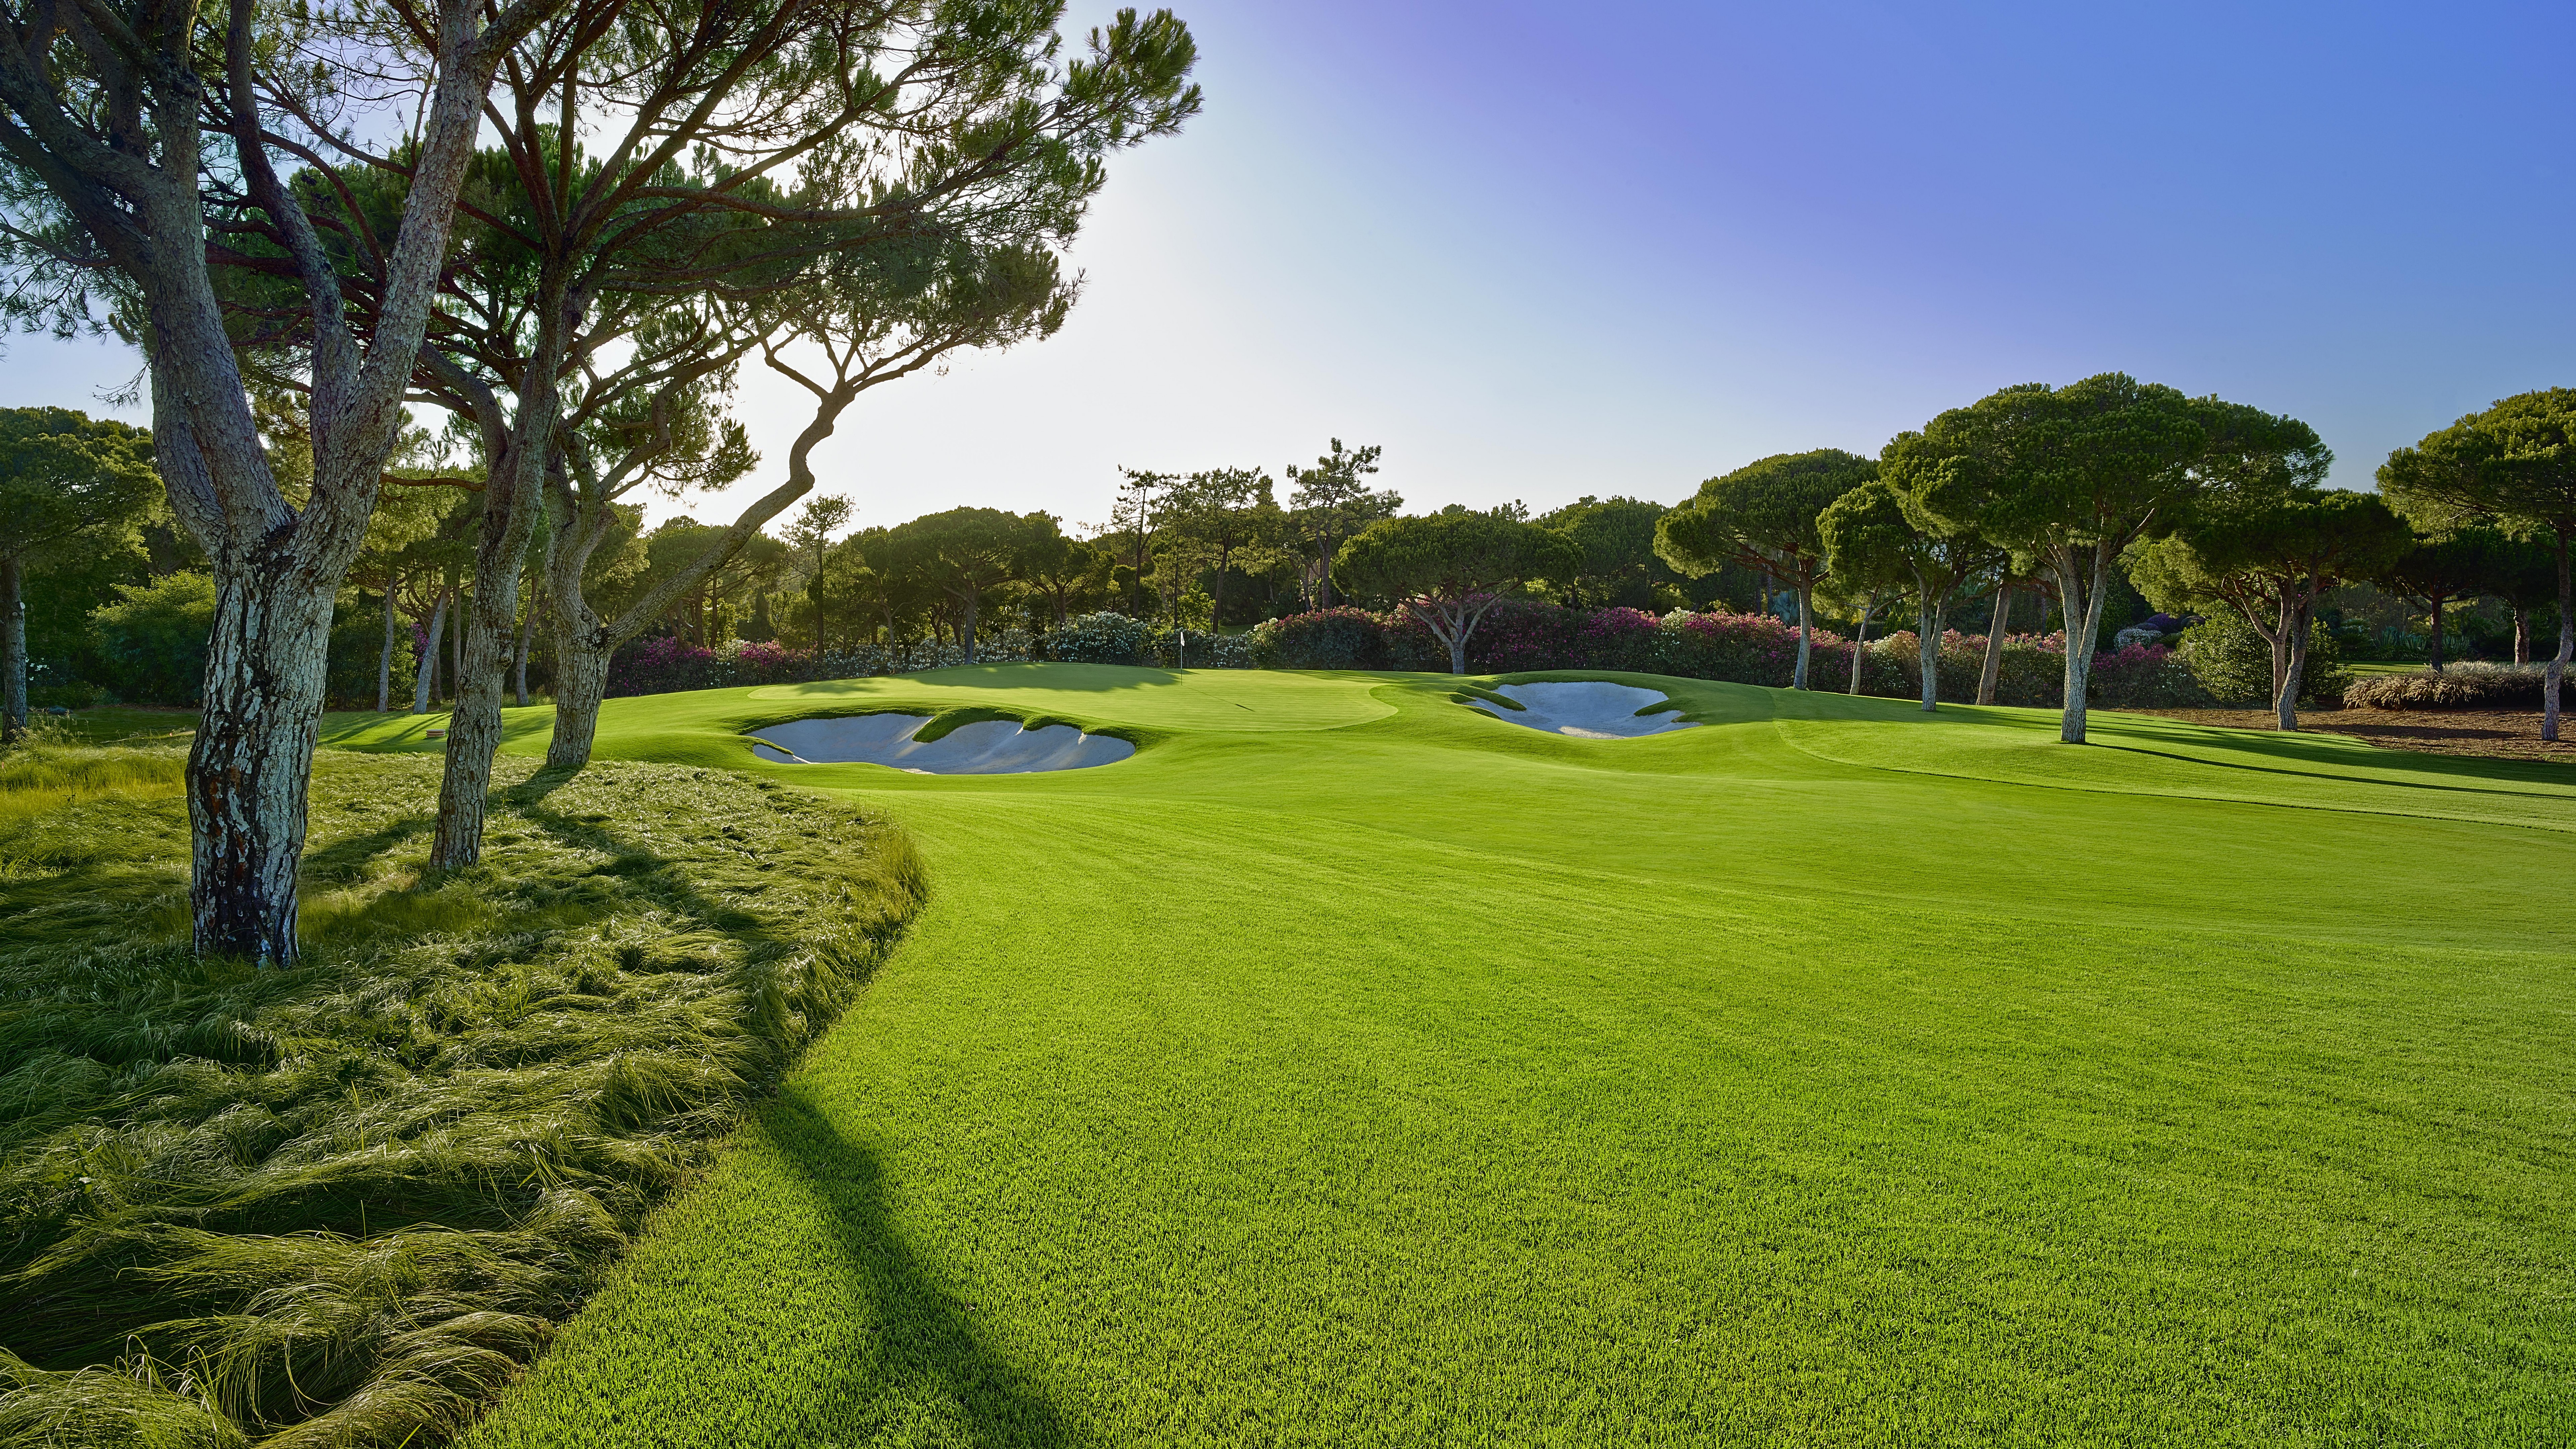 Wallpaper quinta do lago north 5k 4k wallpaper 8k hd - 10k wallpaper nature ...